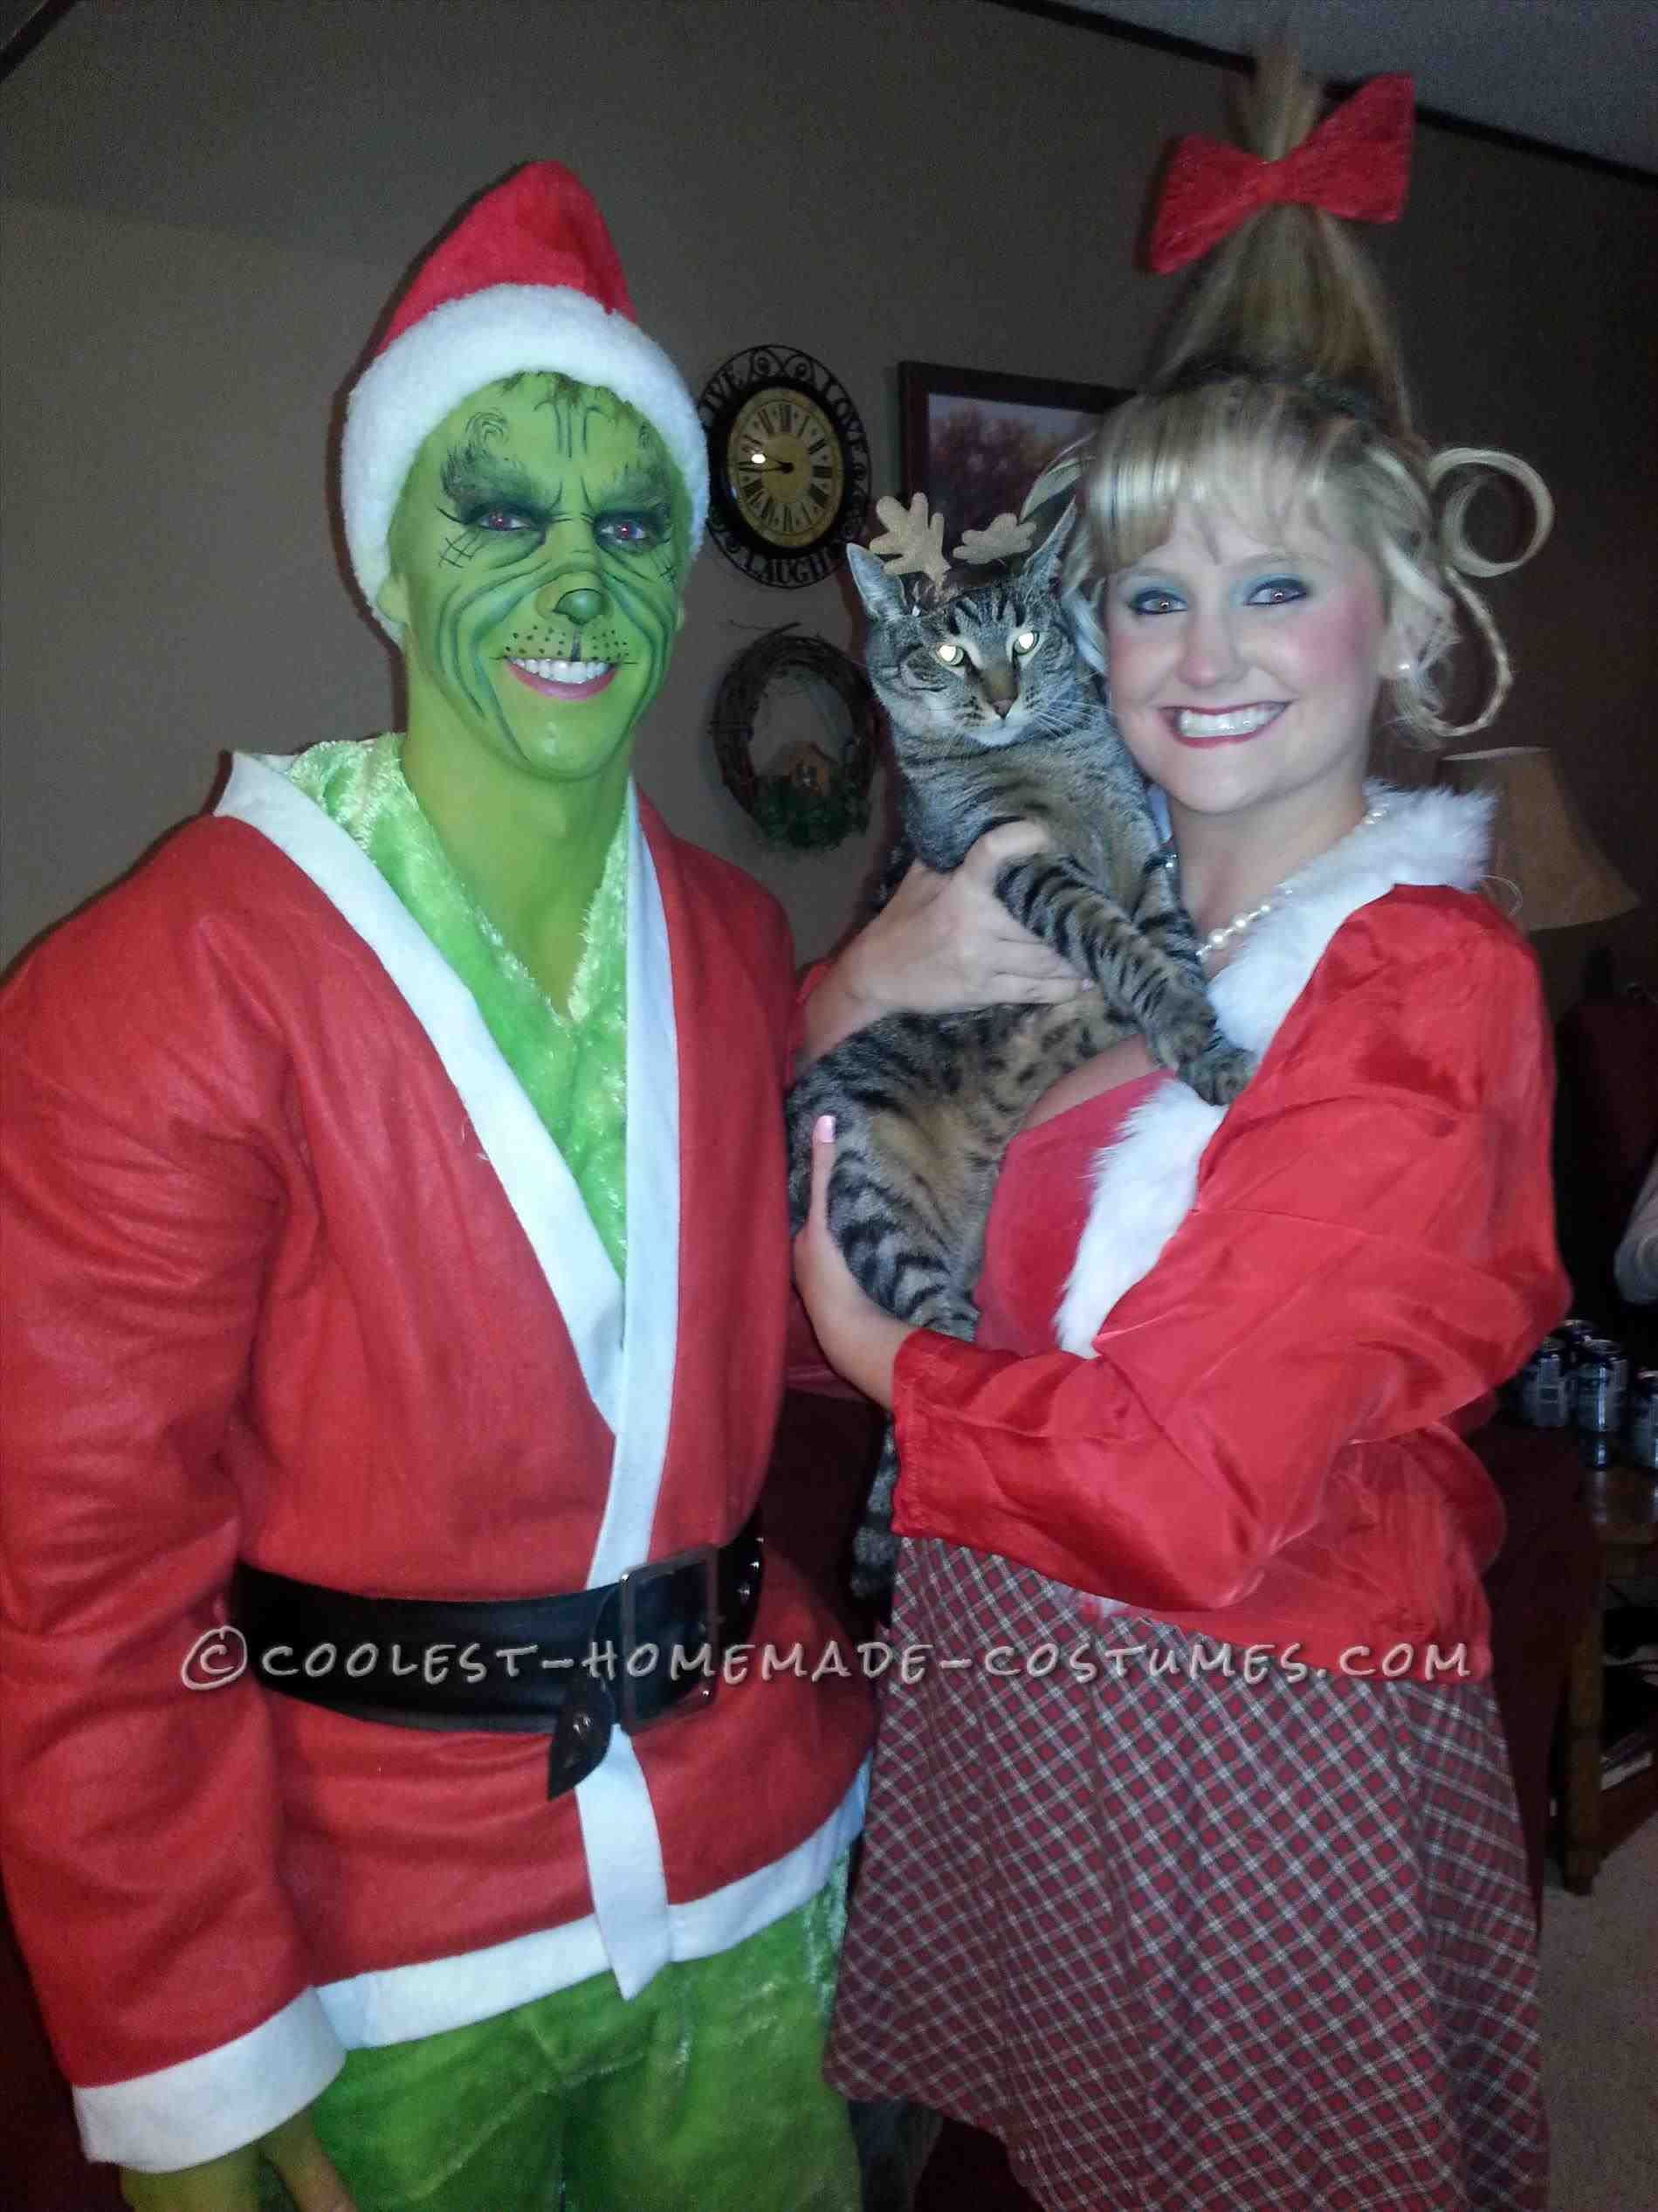 New Post How The Grinch Stole Christmas Costumes Trendingcheminee  sc 1 st  Christmas Tree Decoration Ideas & Images of The Grinch Who Stole Christmas Costumes - Christmas Tree ...